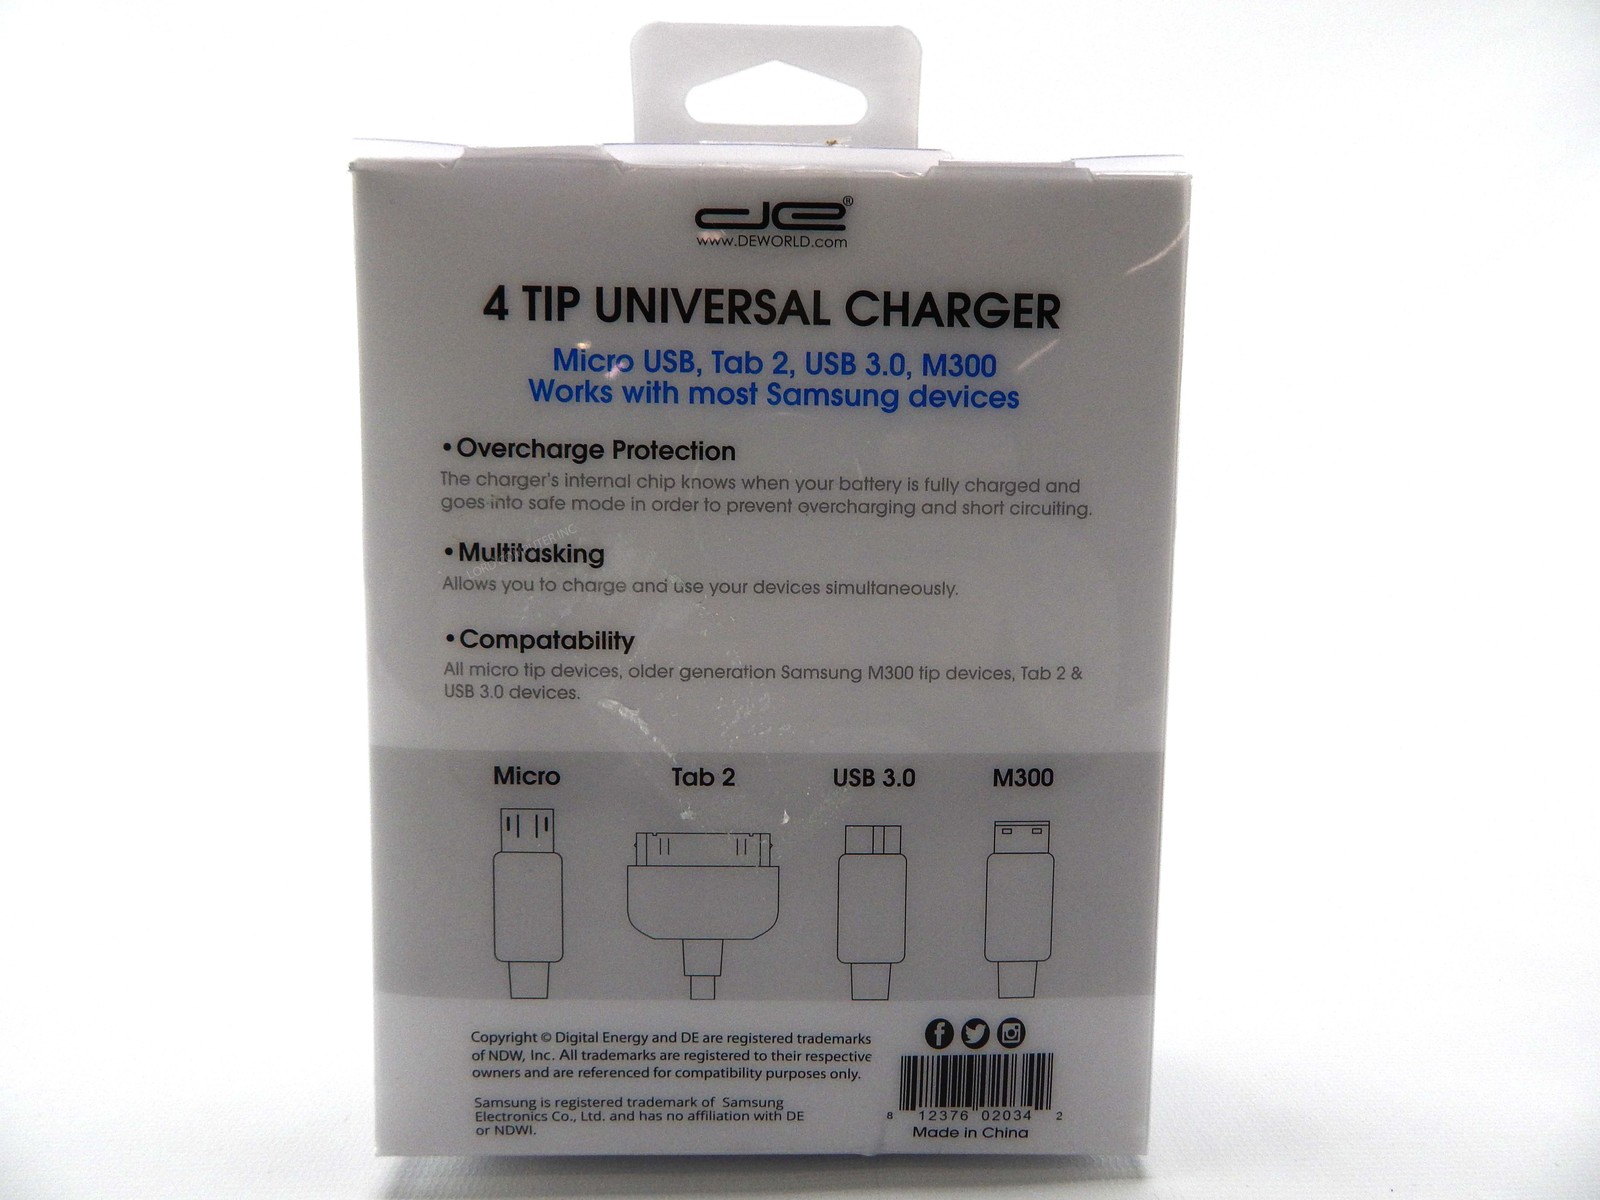 4 Tip Universal Charger